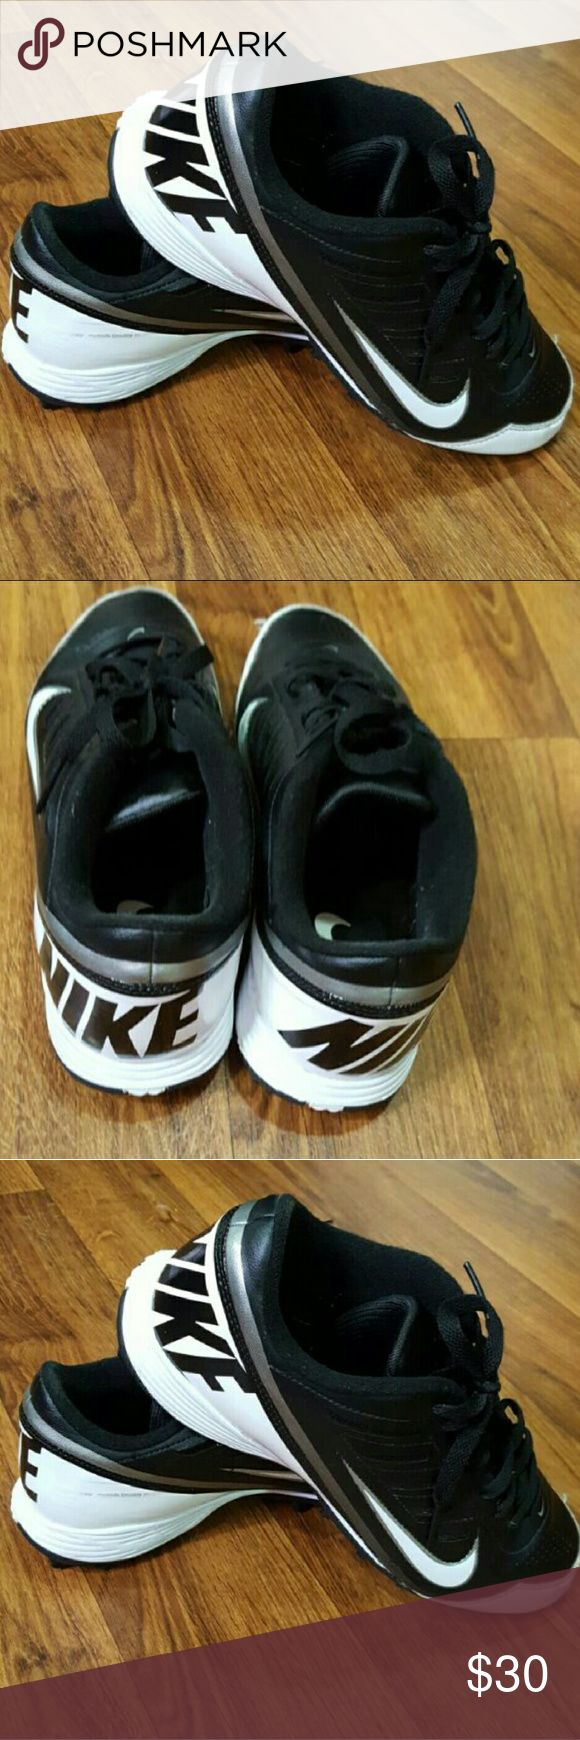 Nike Mens Football Cleats Size 10.5 Wide Worn a couple times, still looks brand new but took of the tags for sizes of shoes. Nike Shoes Athletic Shoes